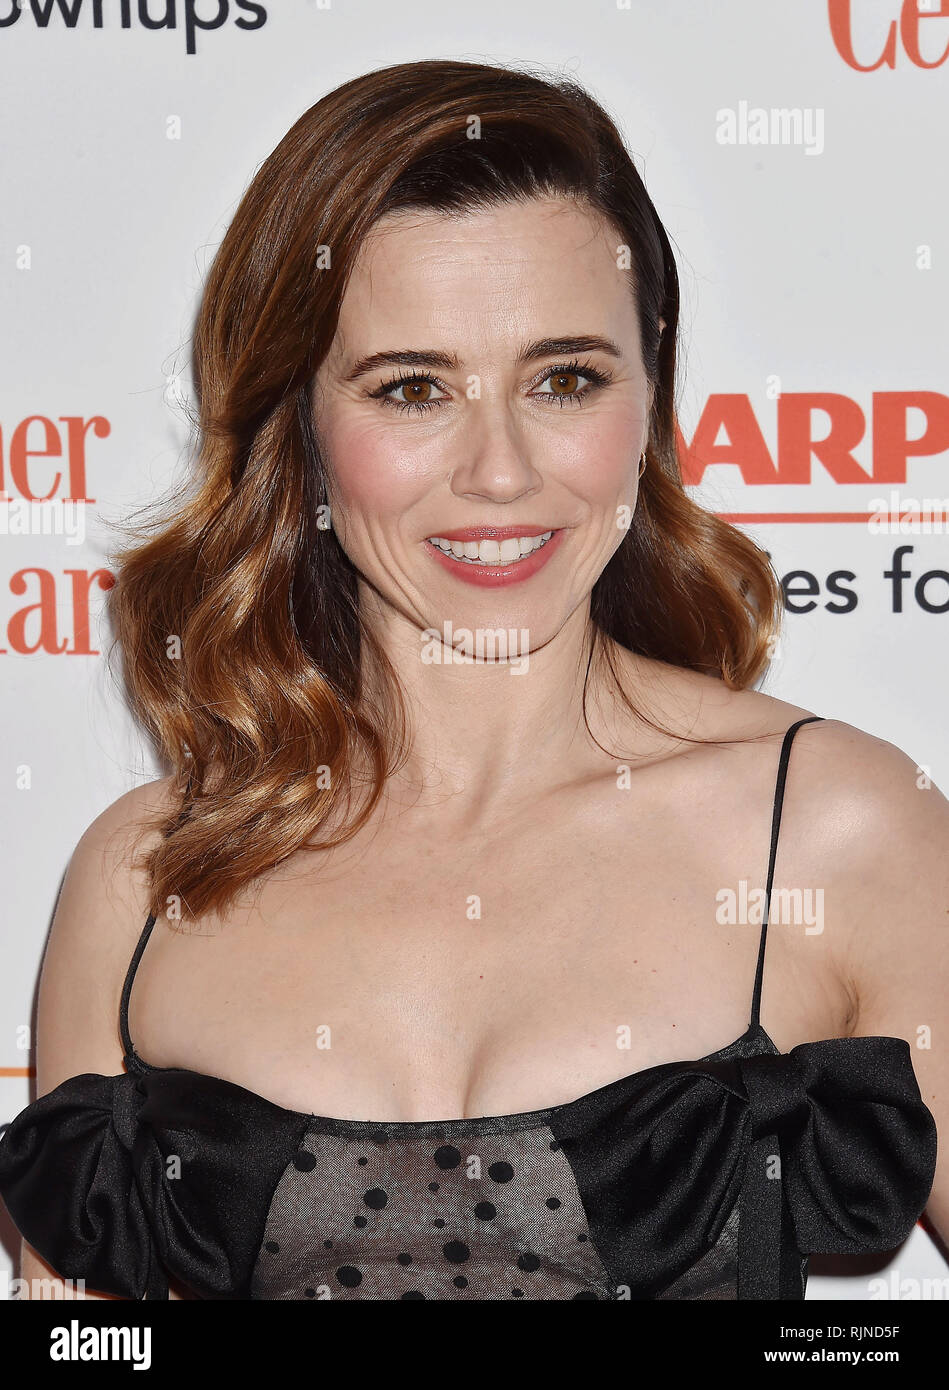 LINDA CARDELLINI American film actress at  the 18th Annual AARP The Magazine's Movies For Grownups Awards at the Beverly Wilshire Four Seasons Hotel on February 04, 2019 in Beverly Hills, California. Photo: Jeffrey Mayer - Stock Image